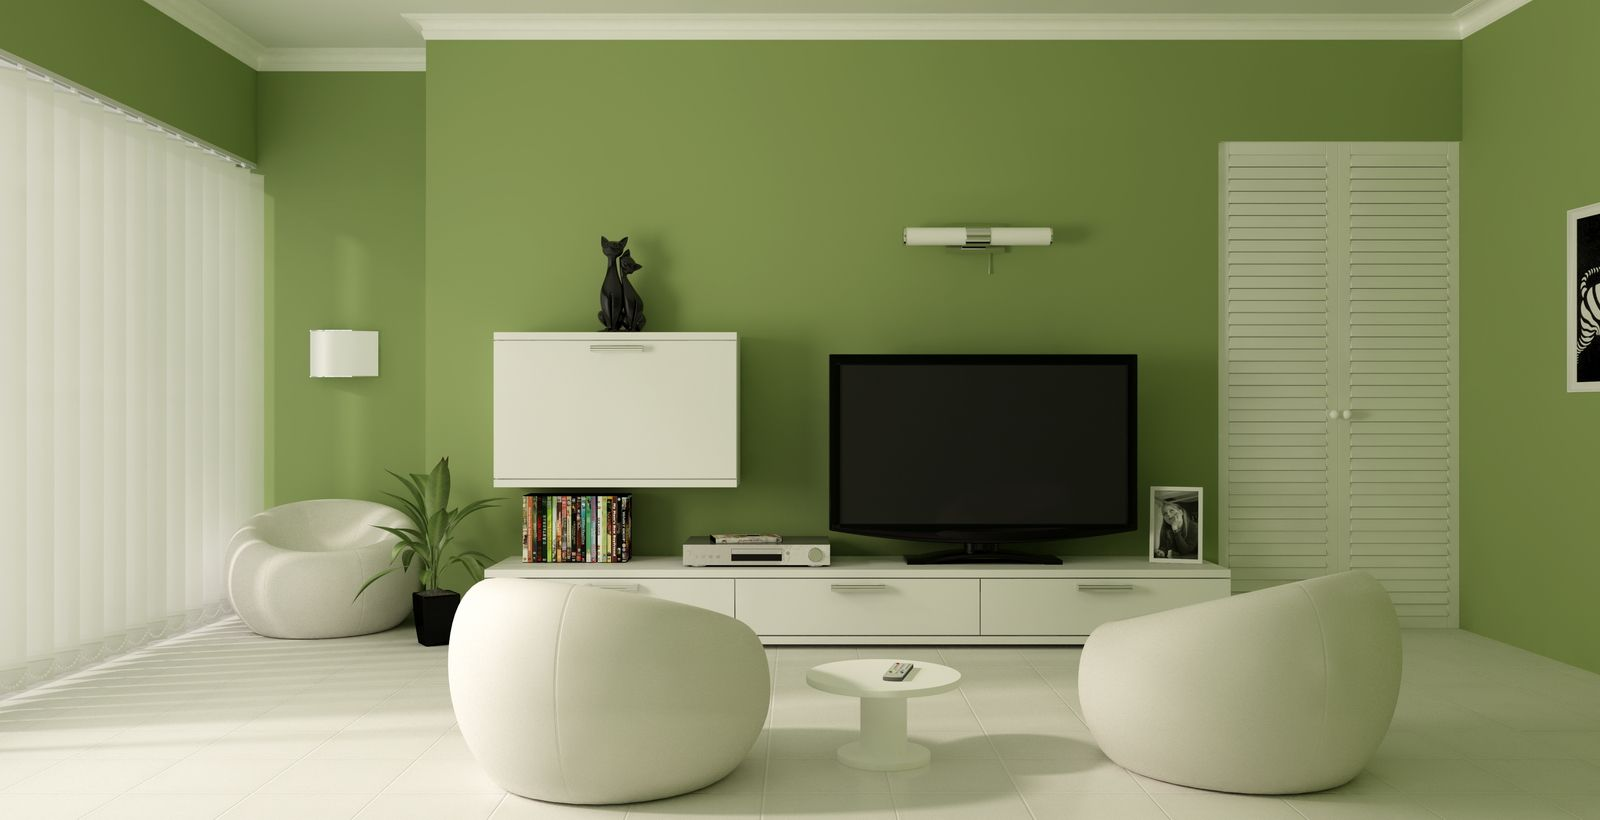 Paint Suggestions For Living Room Paint Colors Ideas For Living Room Paint Colors Living Room